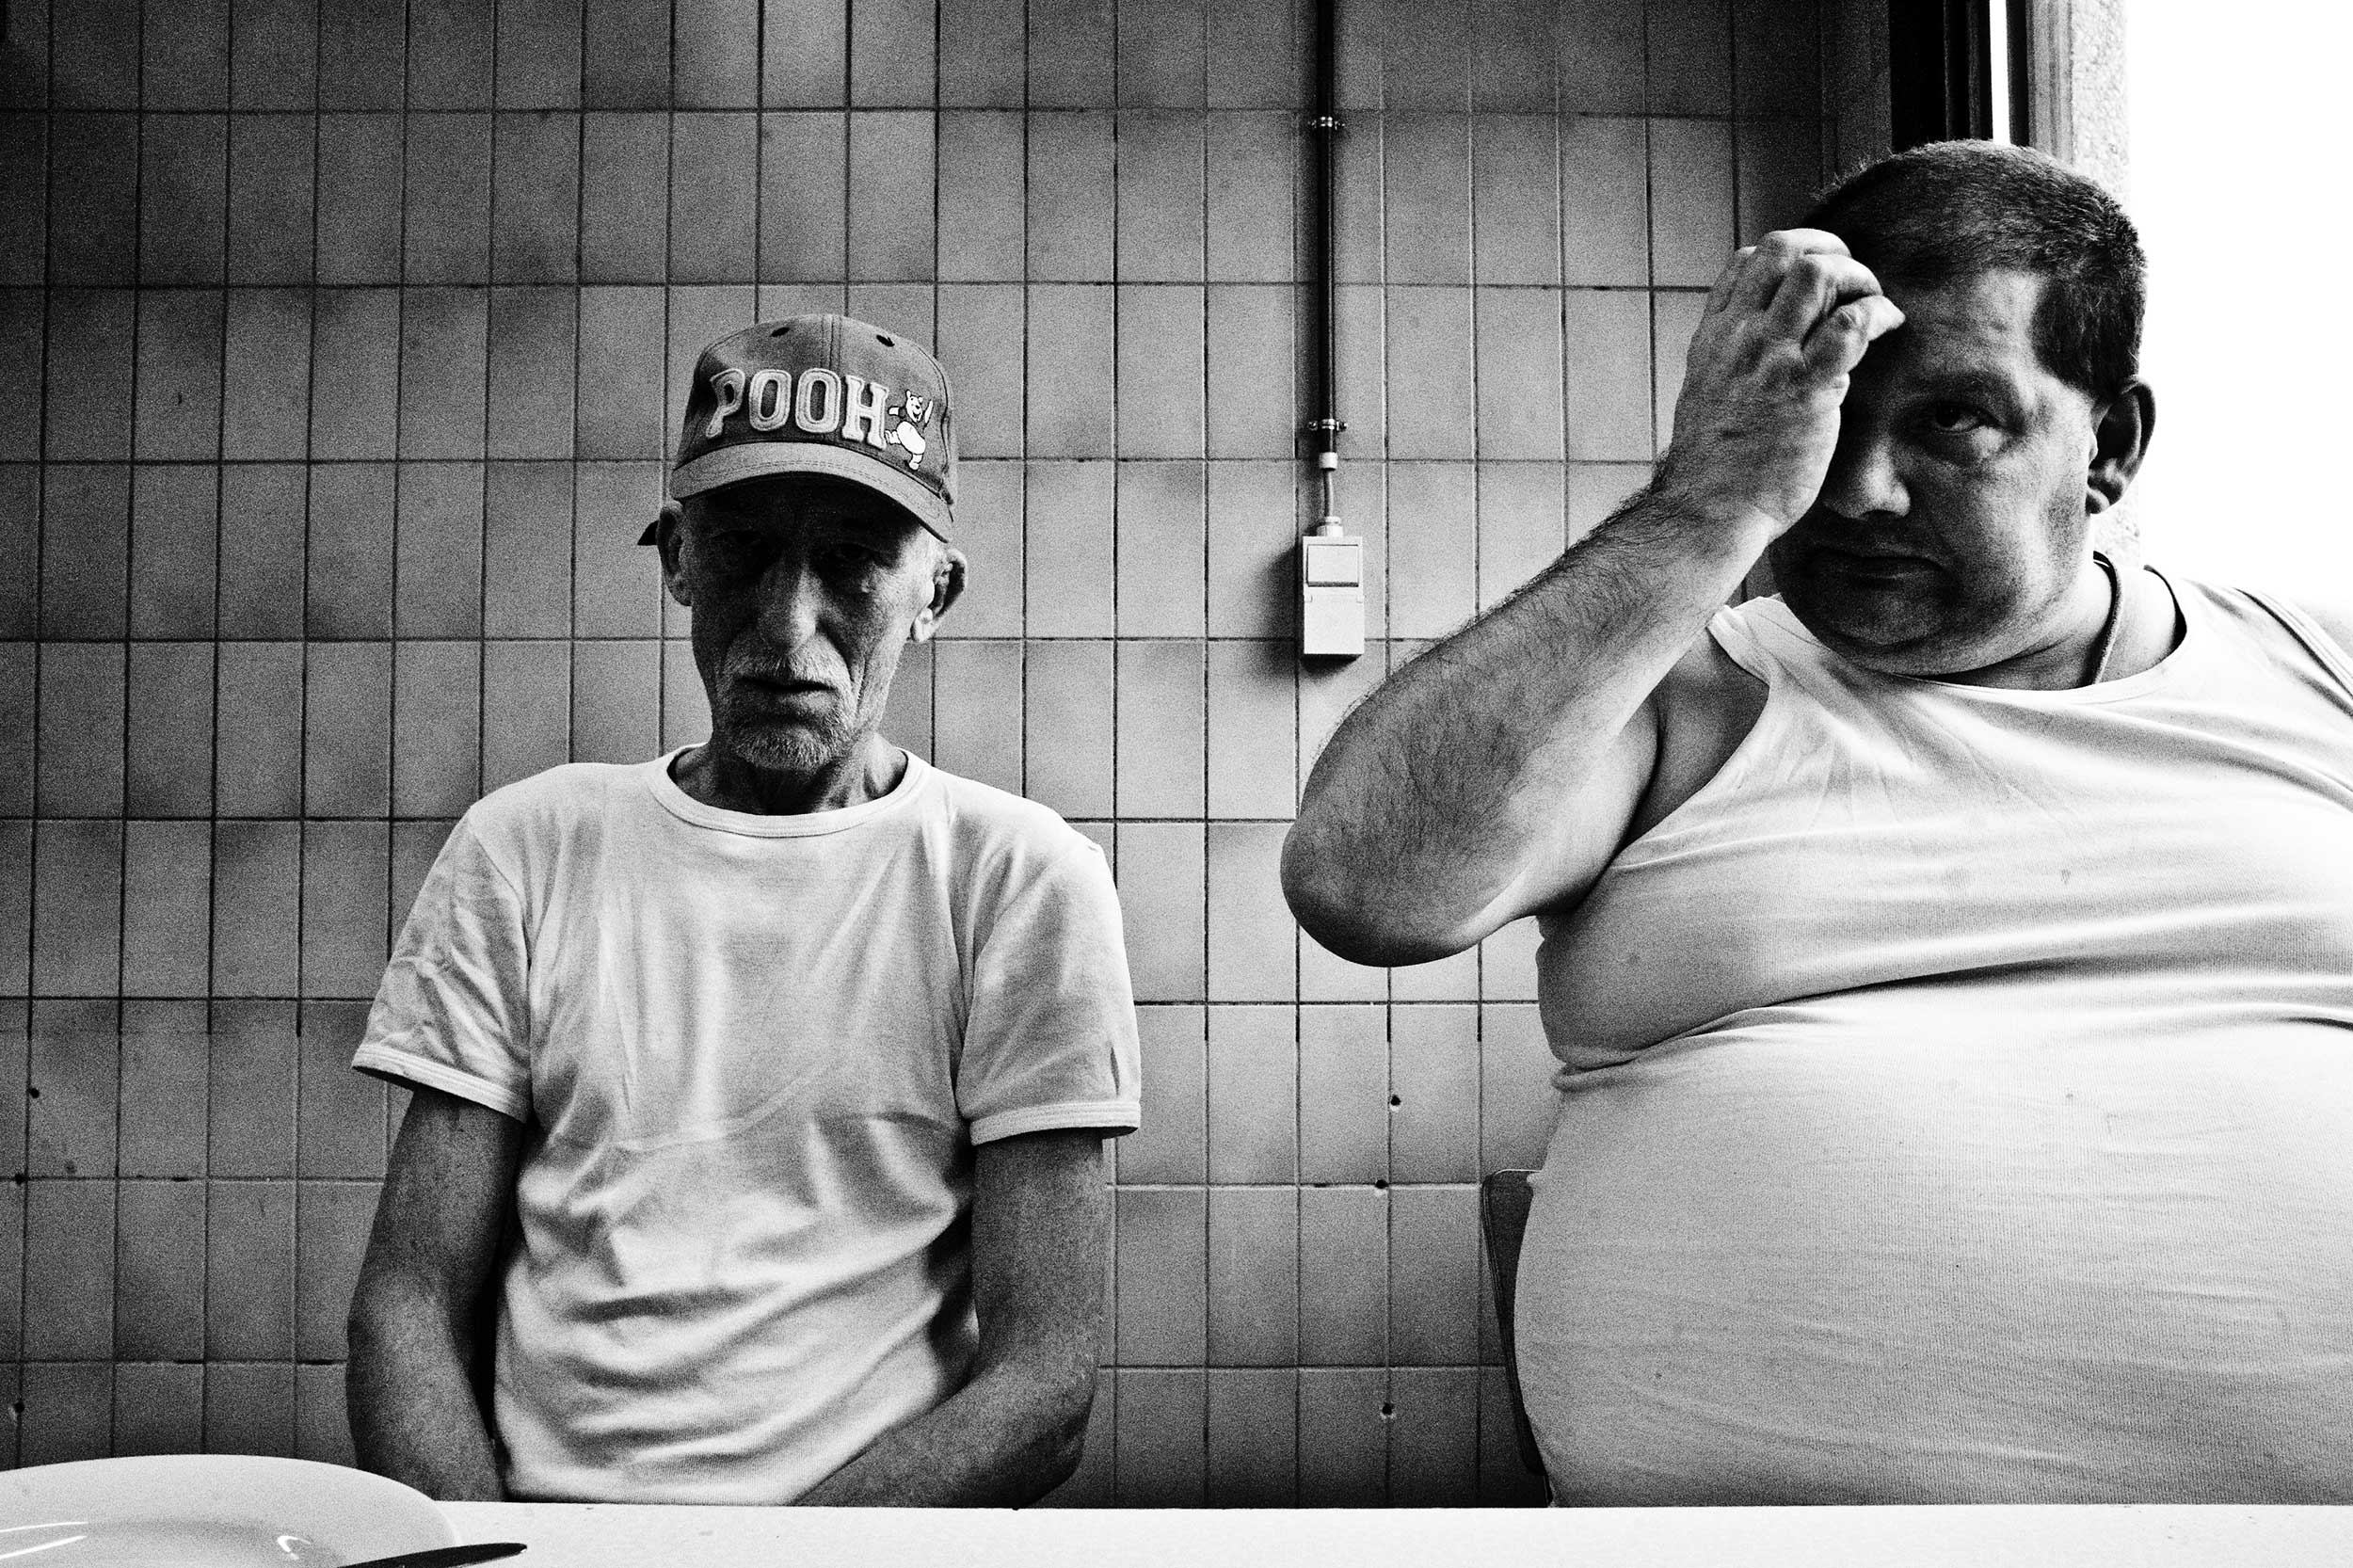 Two inmates eating in the kitchen of the prison of Paifve, Liège, Belgium. March 2011.